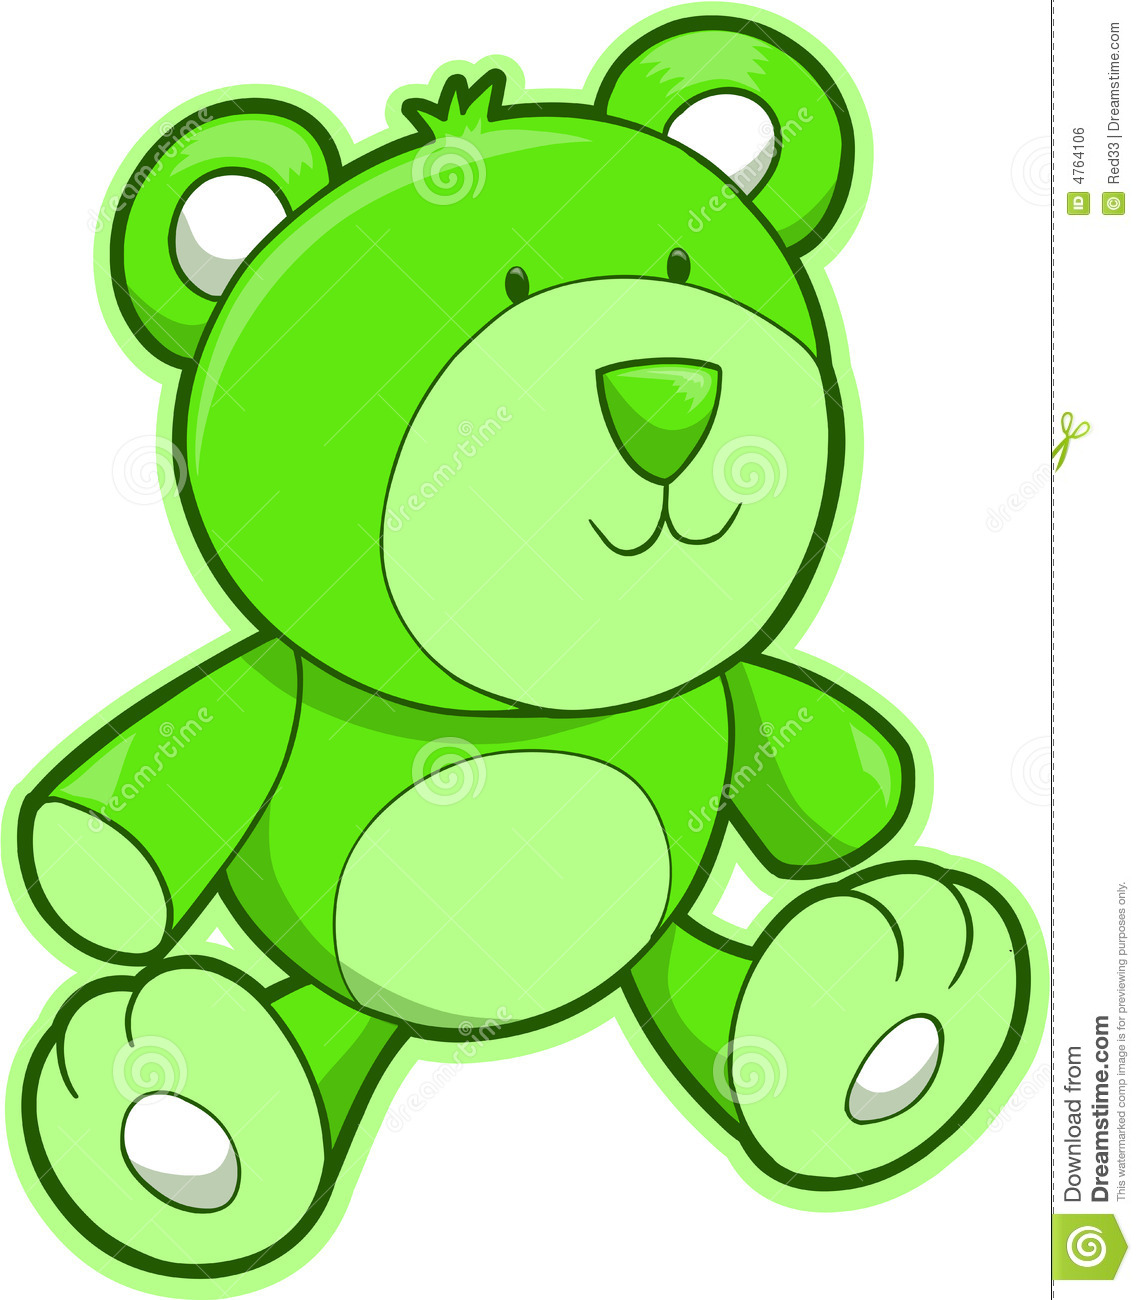 teddy bear vector royalty free stock image   image 4764106